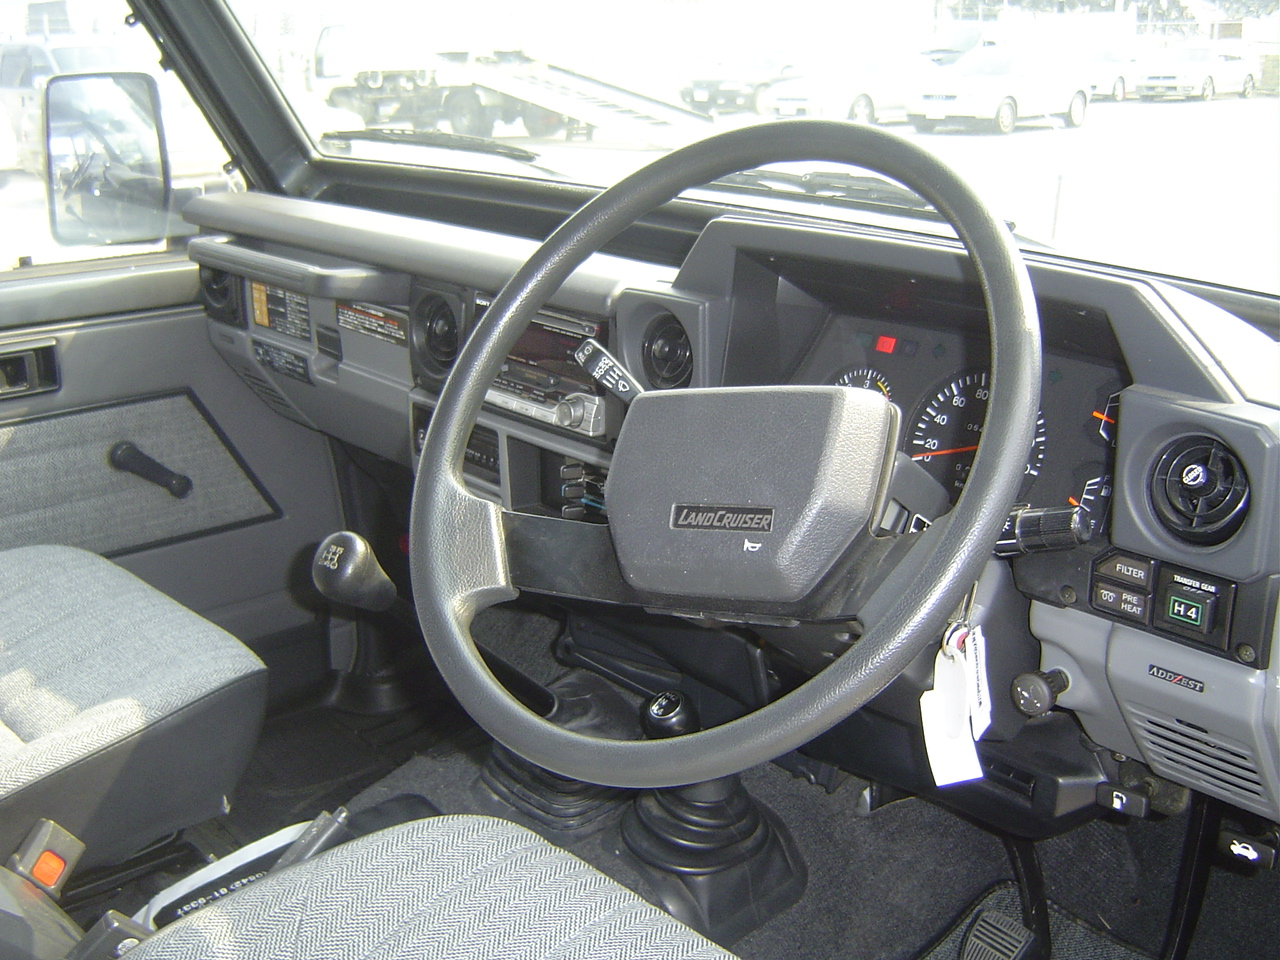 1989 Toyota Landcruiser BJ74 4WD steering wheel